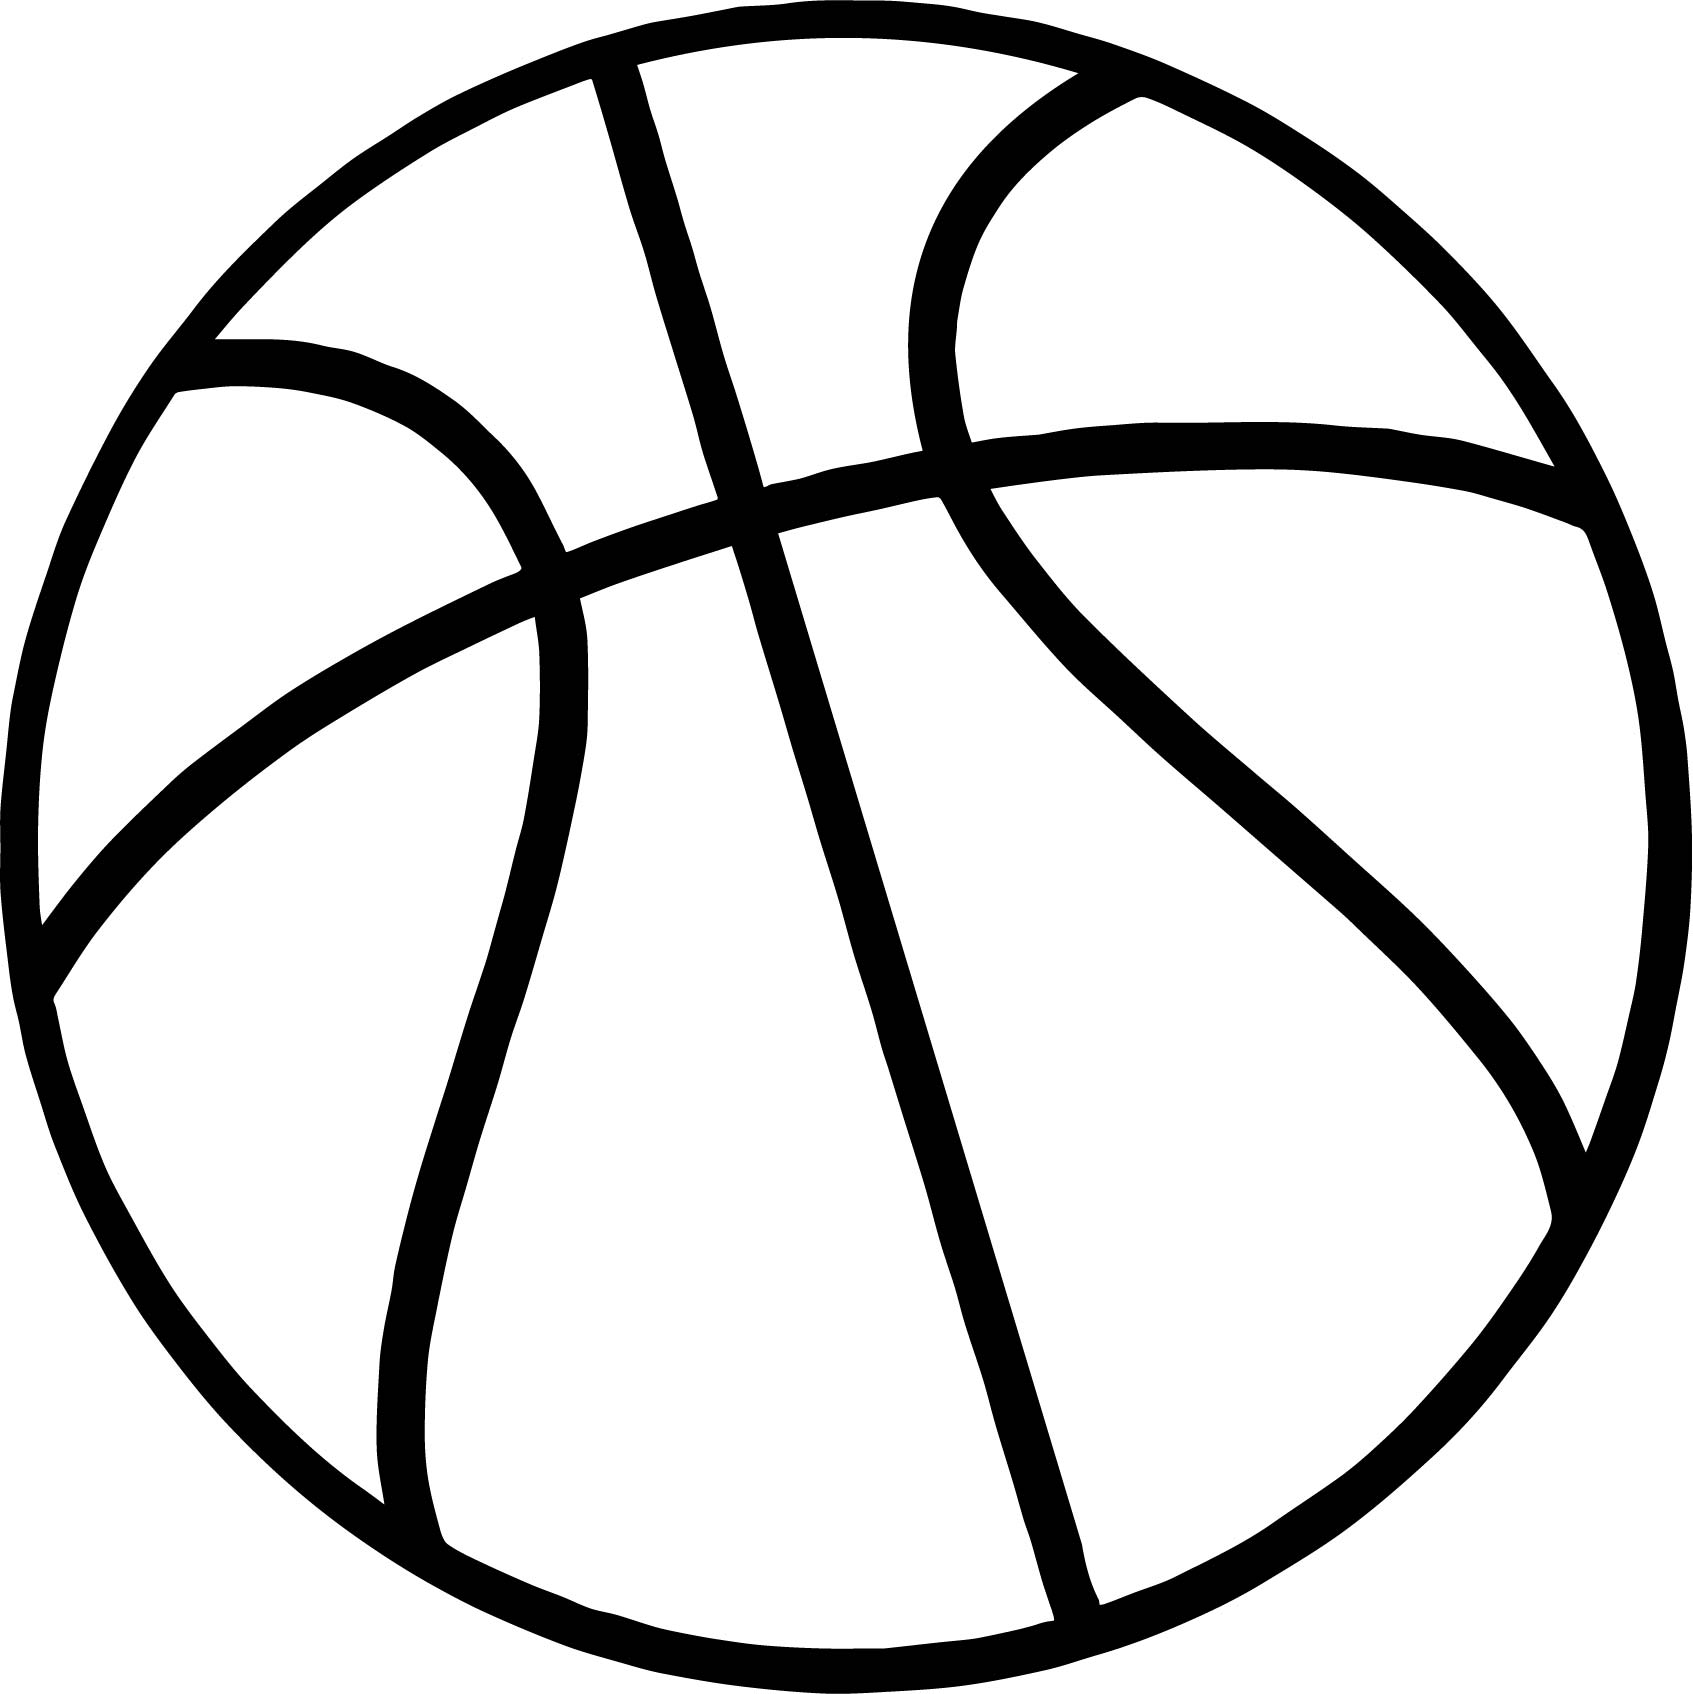 Coloring Pages Basketball : Just basketball ball coloring page wecoloringpage